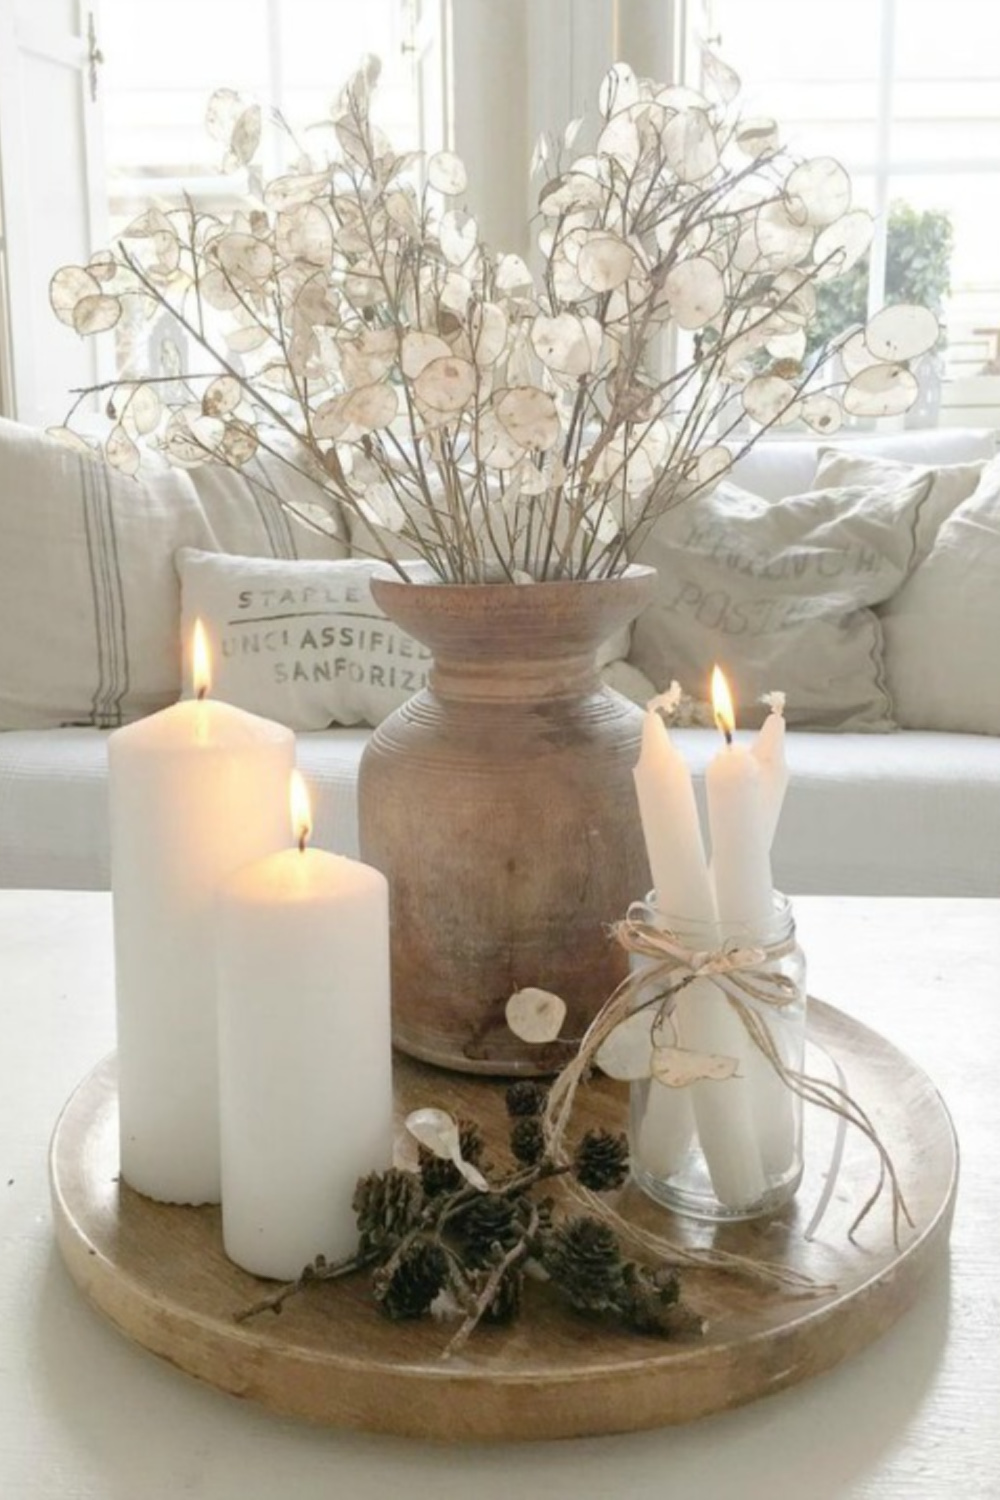 French Nordic living room vignette with candles, pale colors, grain sack pillows, linen and serene style by Villa Jenal. #frenchnordic #livingroom #scandistyle